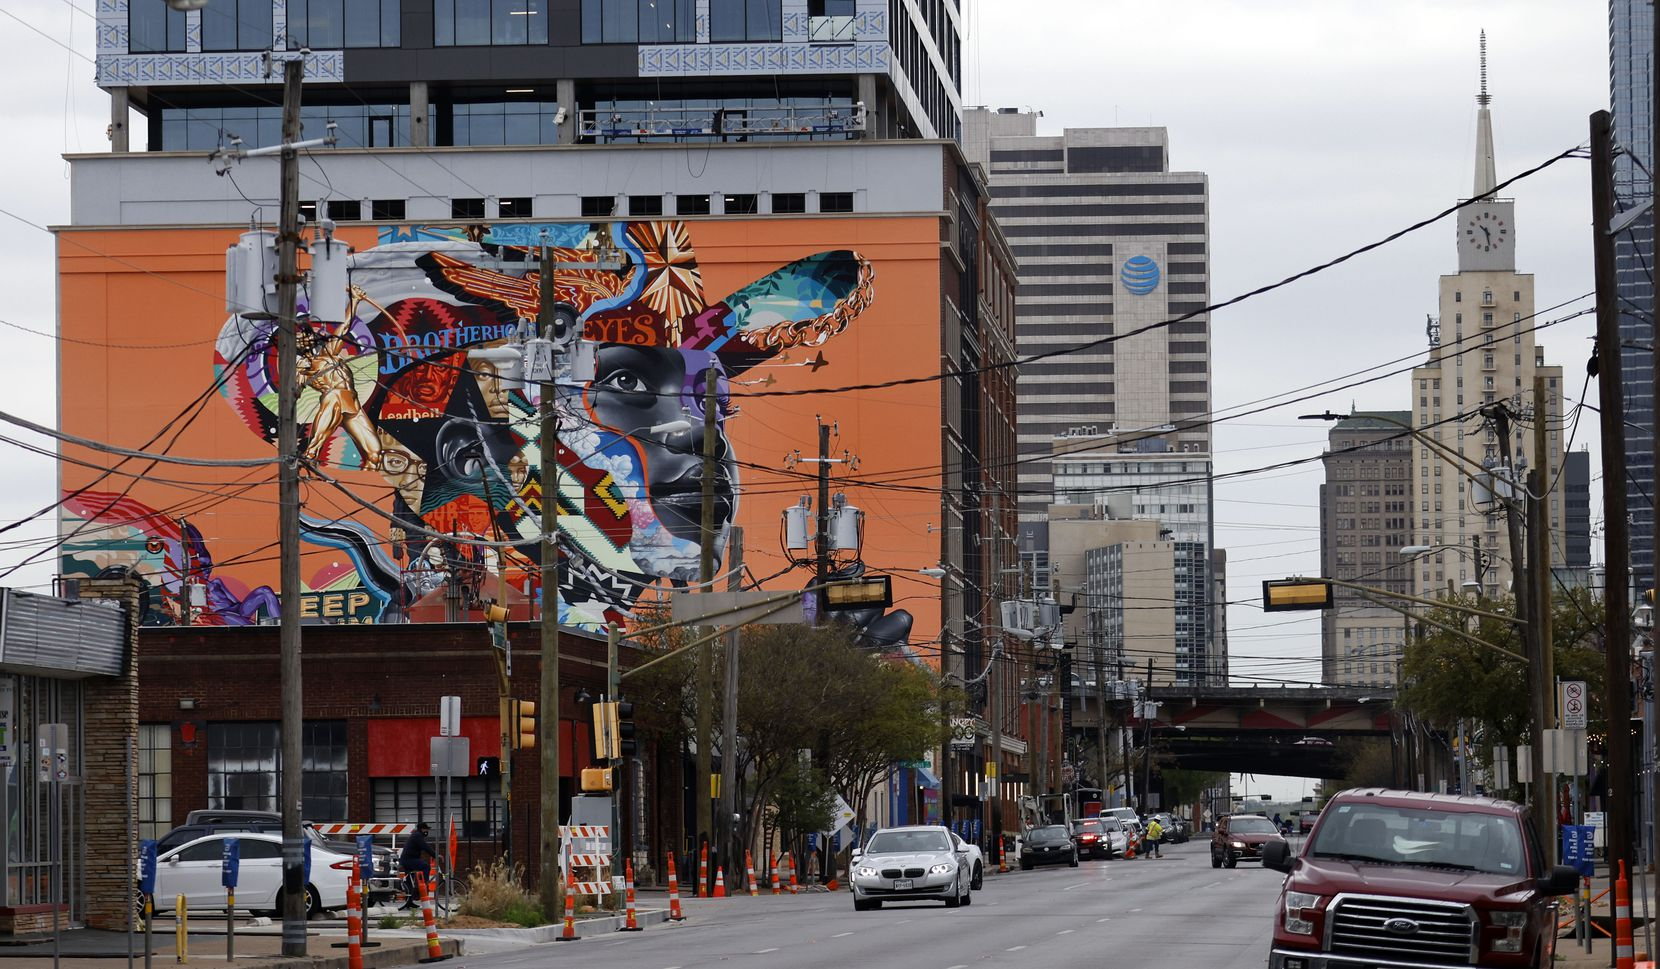 An 8,500-square-foot mural by artist Tristan Eaton is painted on The Stack building on Commerce Street in the Deep Ellum area of Dallas. Proposed change to highways could better connect Deep Ellum to both South Dallas and the Central Business District. (Tom Fox/The Dallas Morning News)